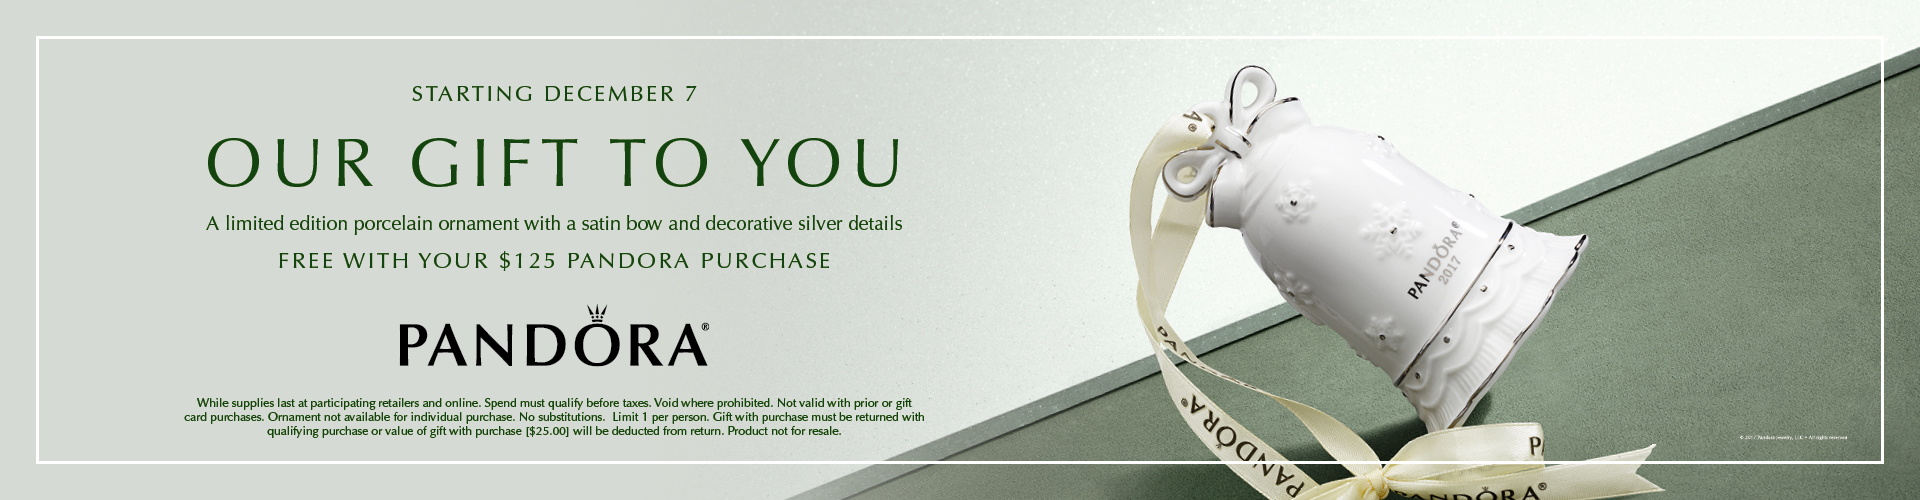 Pandora Holiday Ornament Yours Free with Qualifying Purchase!